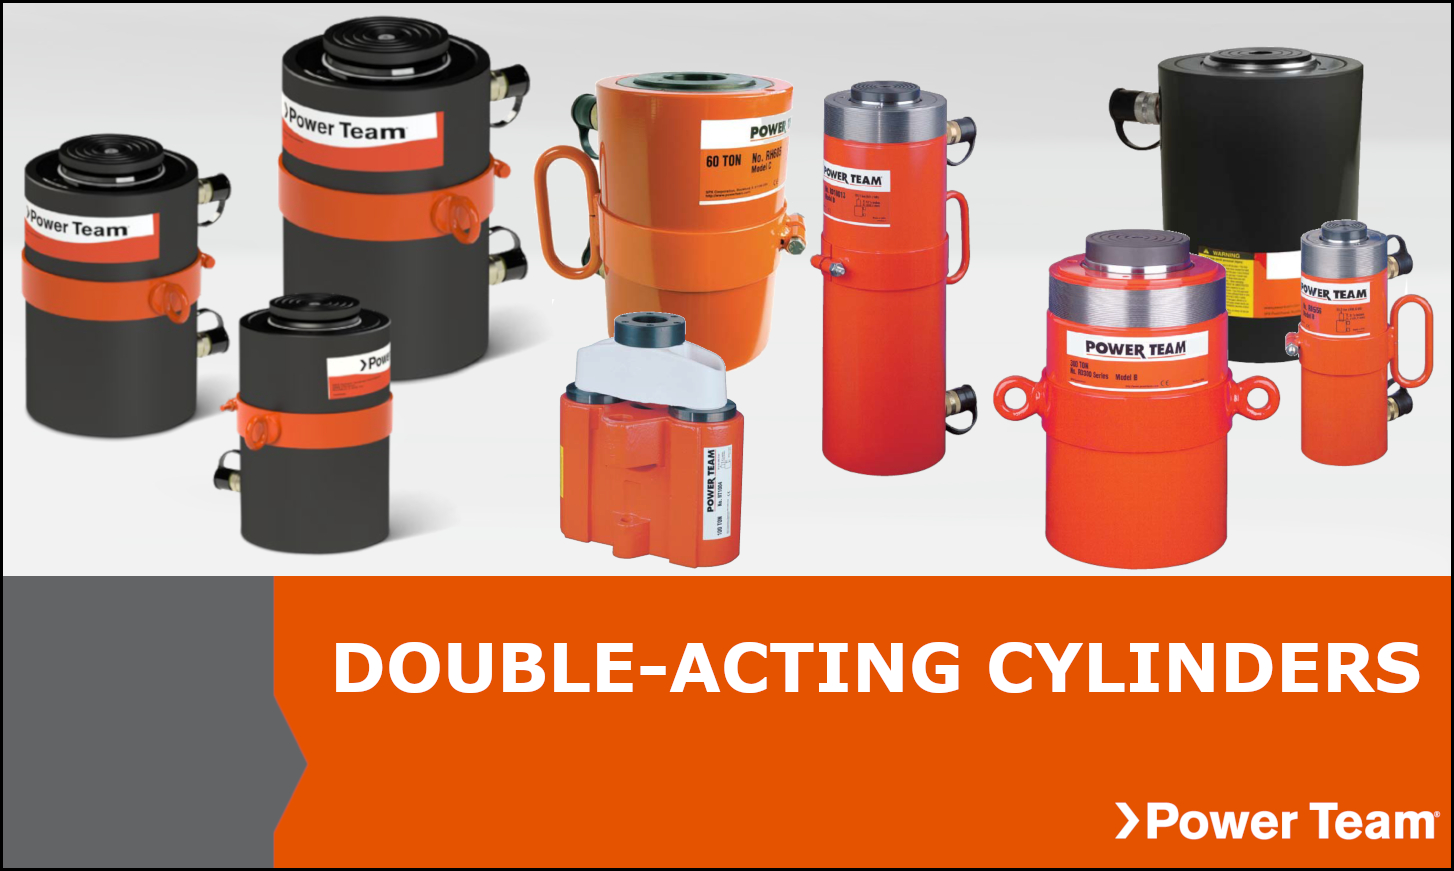 Double Acting Power Team Cylinders